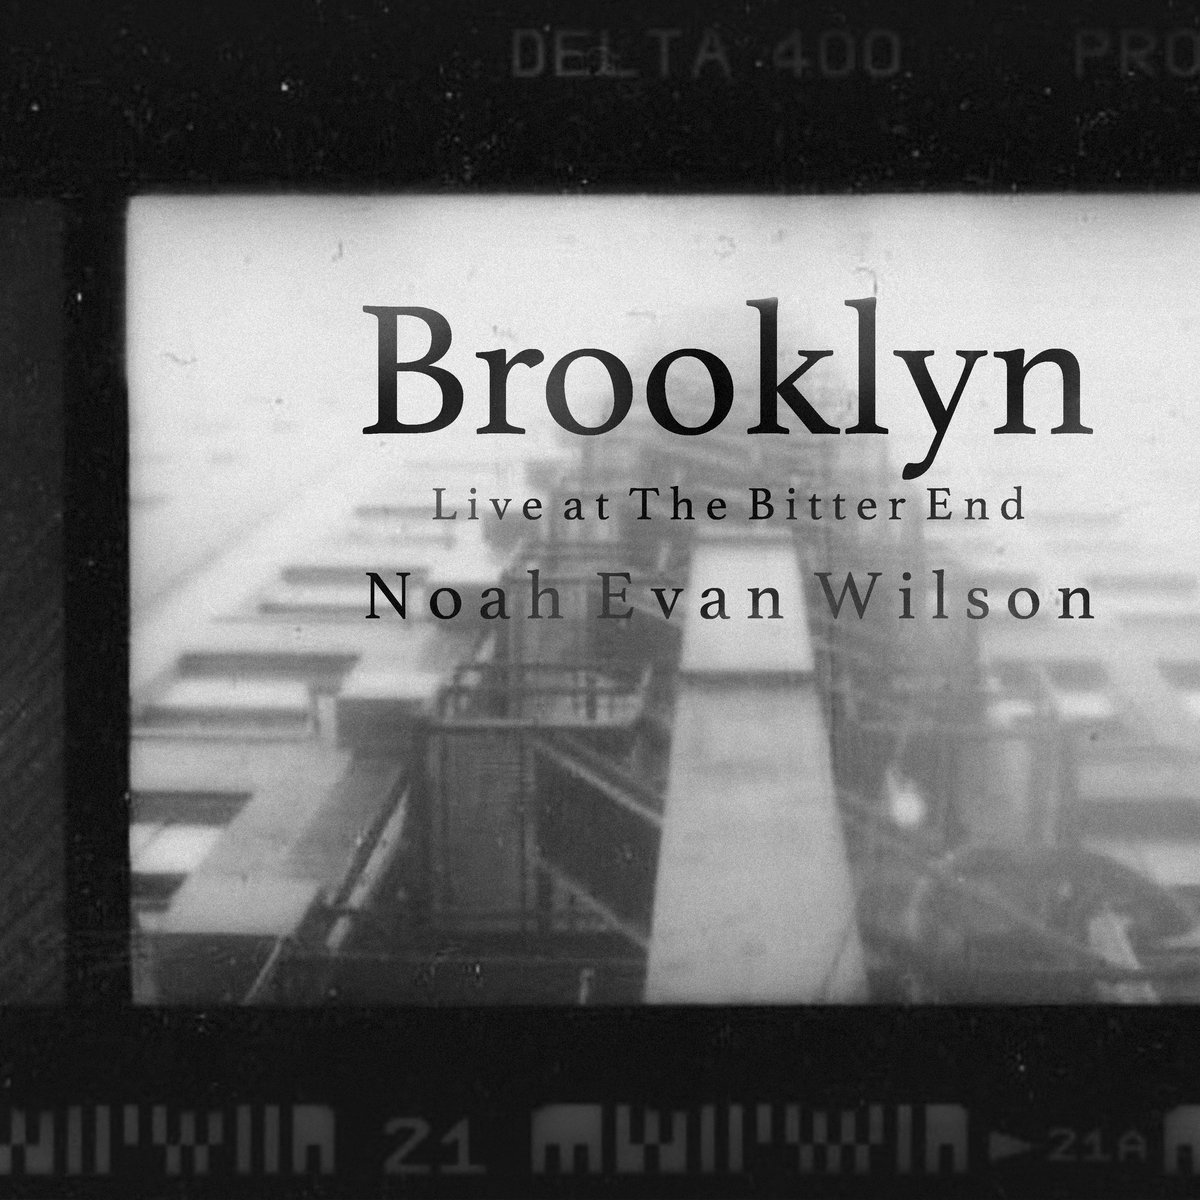 Brooklyn (Live at The Bitter End) by Noah Evan Wilson